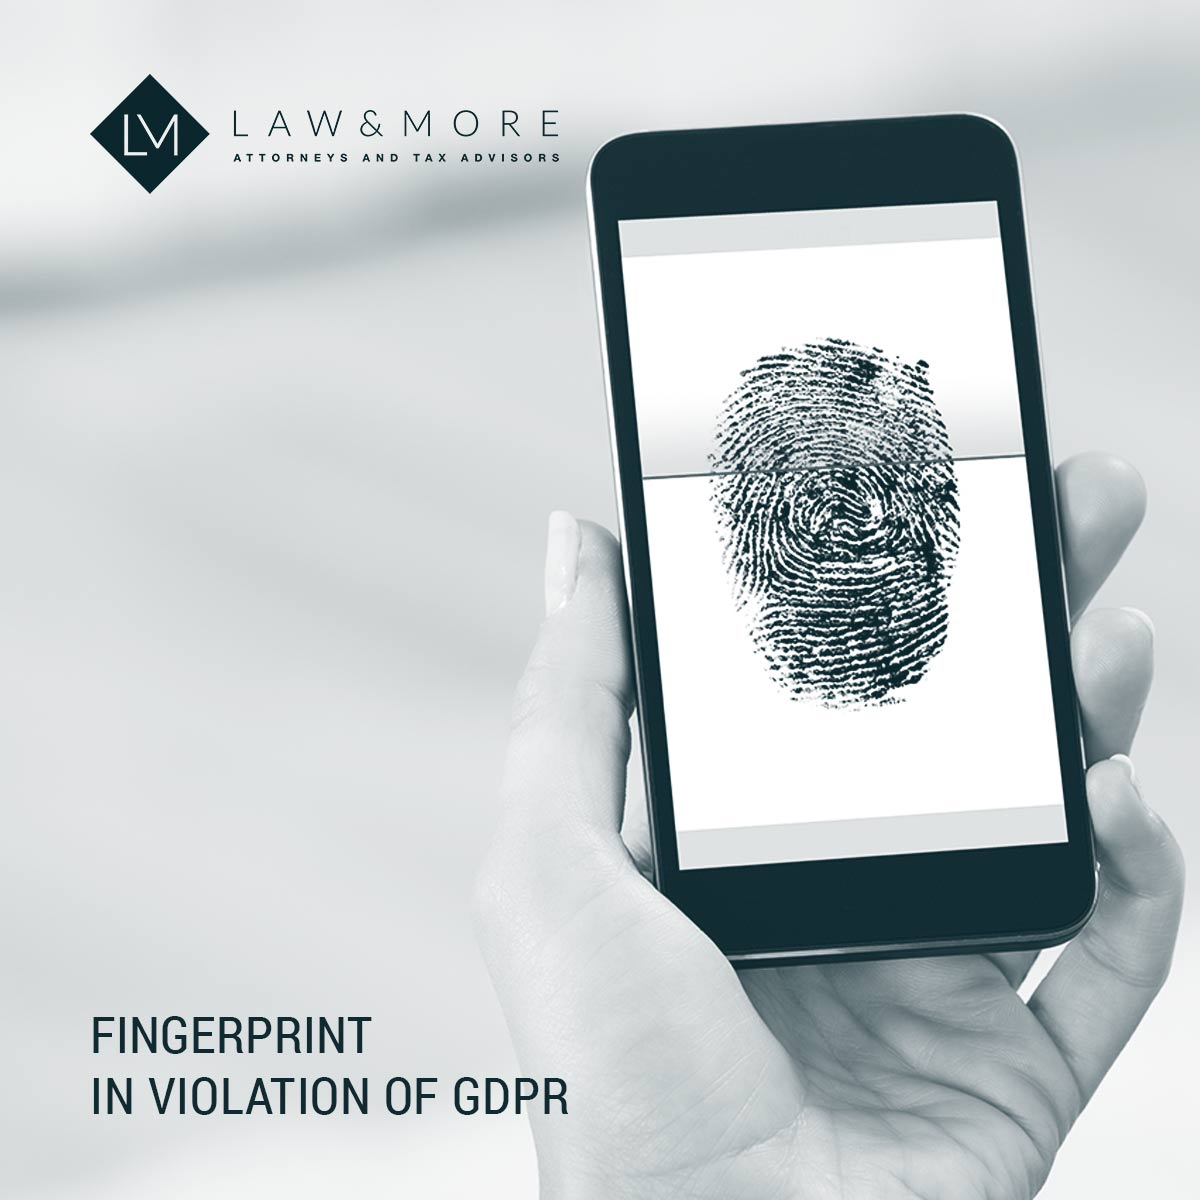 Fingerprint in violation of GDPR Image 1x1